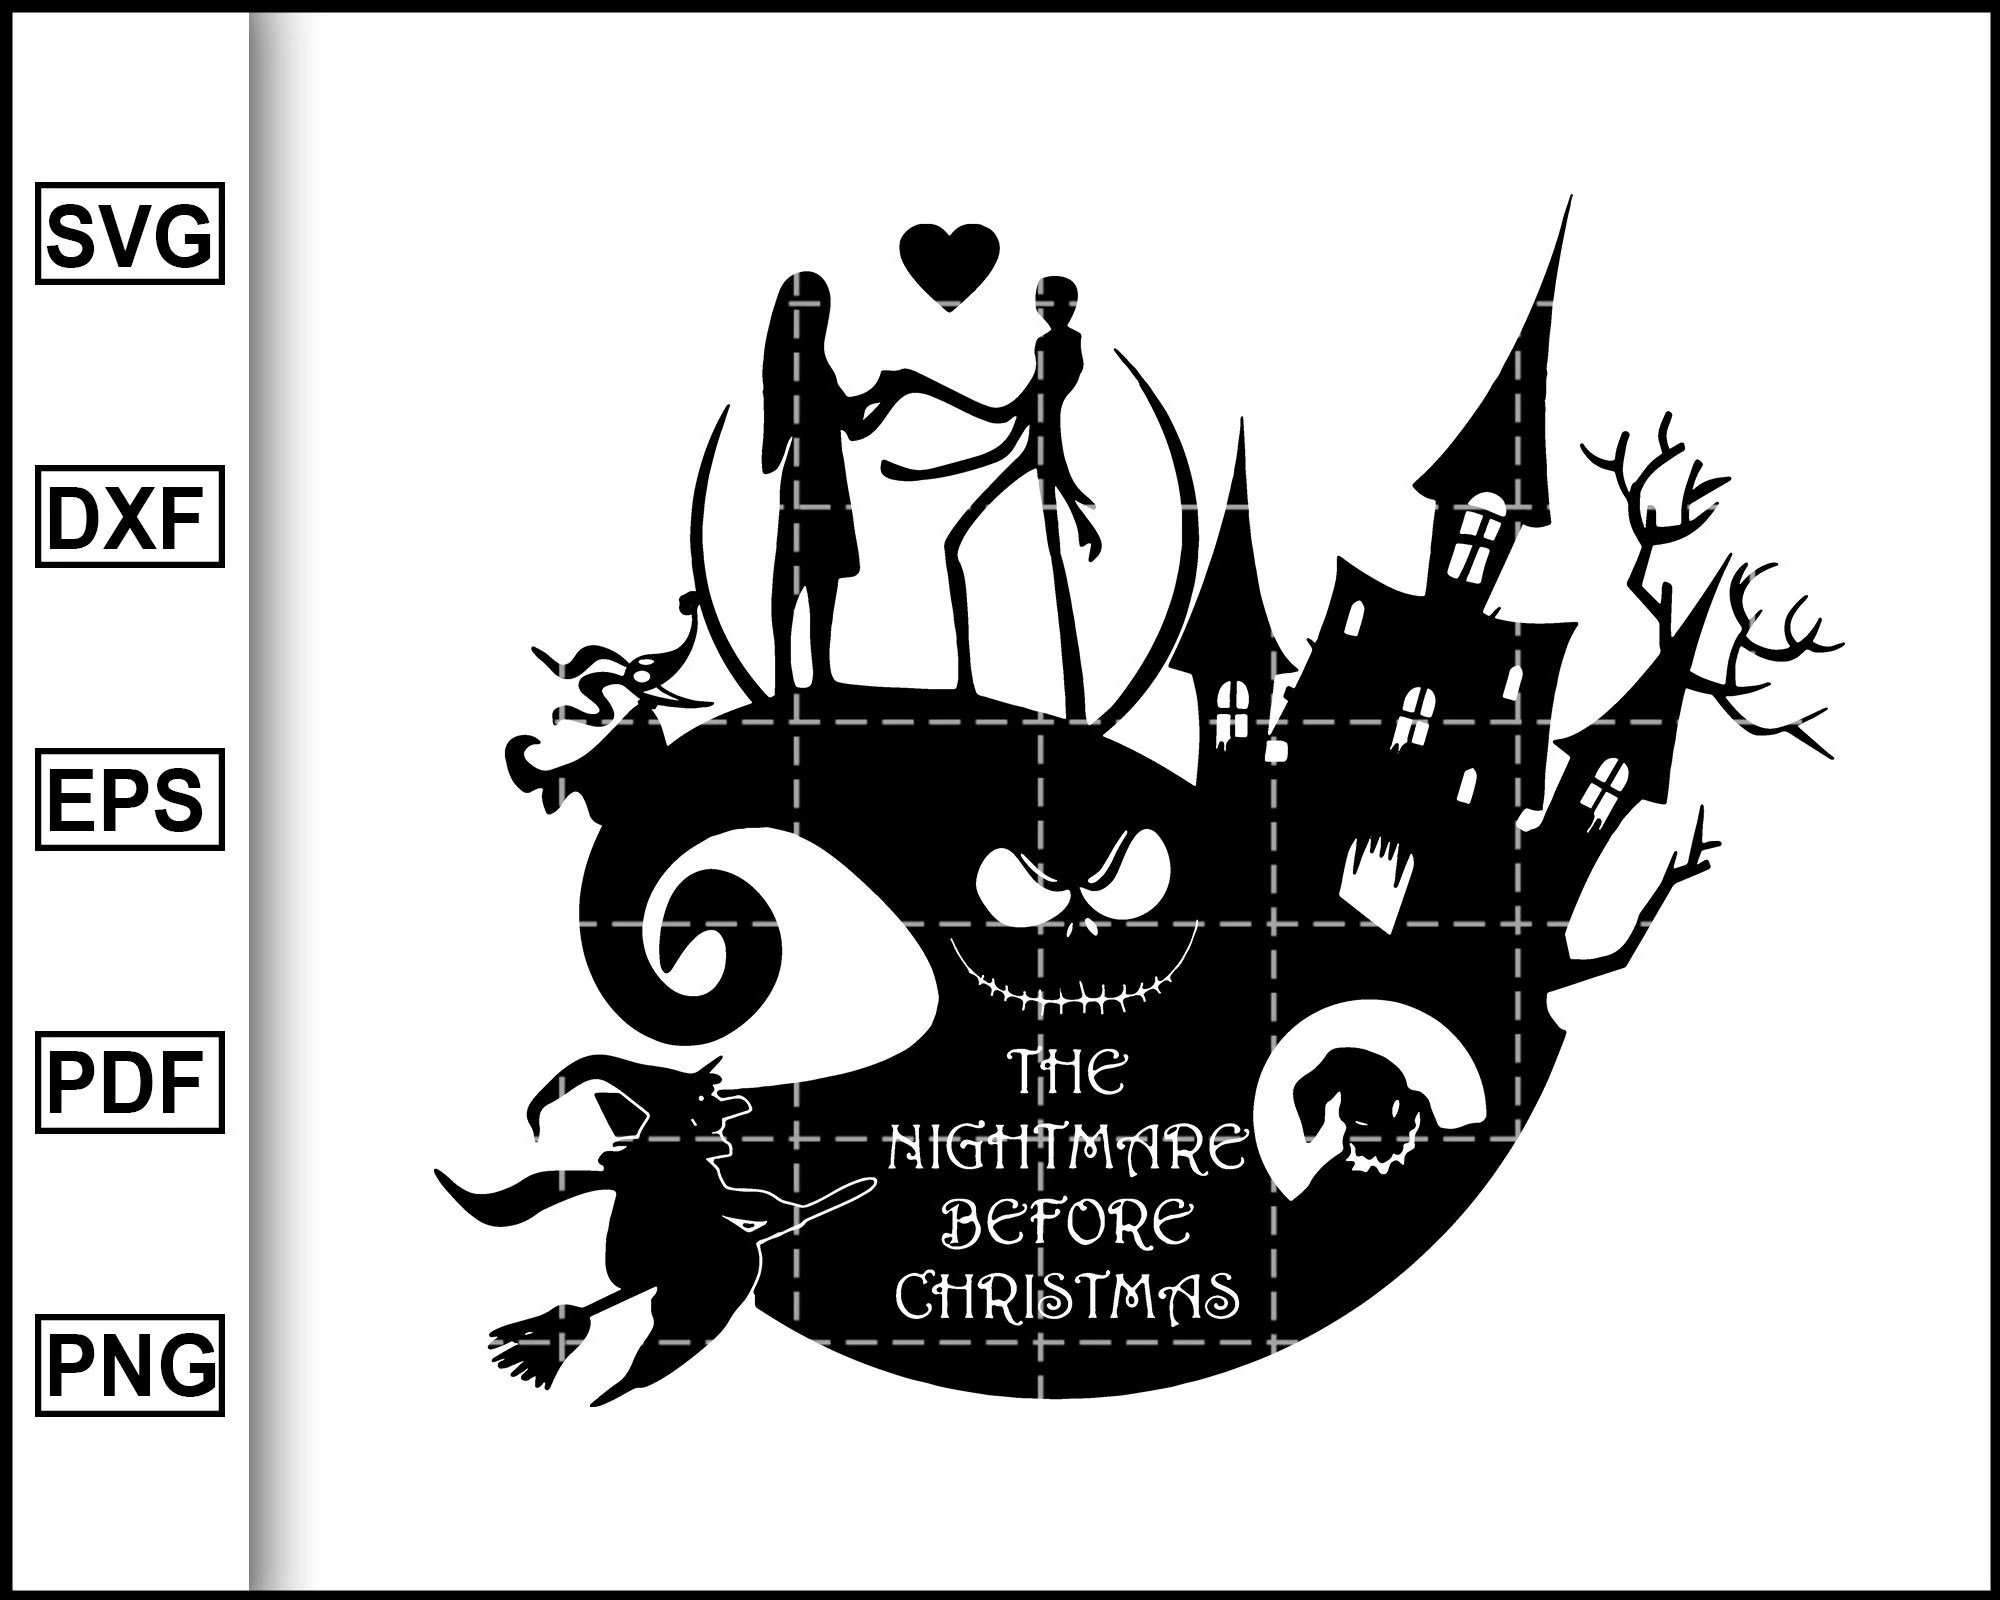 Download svg cut files for cricut, silhouette, other cutting machines. Nightmsre Before Christmas Svg Jack Skellington Svg Free Nightmare Before Christmas Svg Free Halloween Svg Free Svg Hubs Tons Of Awesome Nightmare Before Christmas Wallpapers Hd To Download For Free